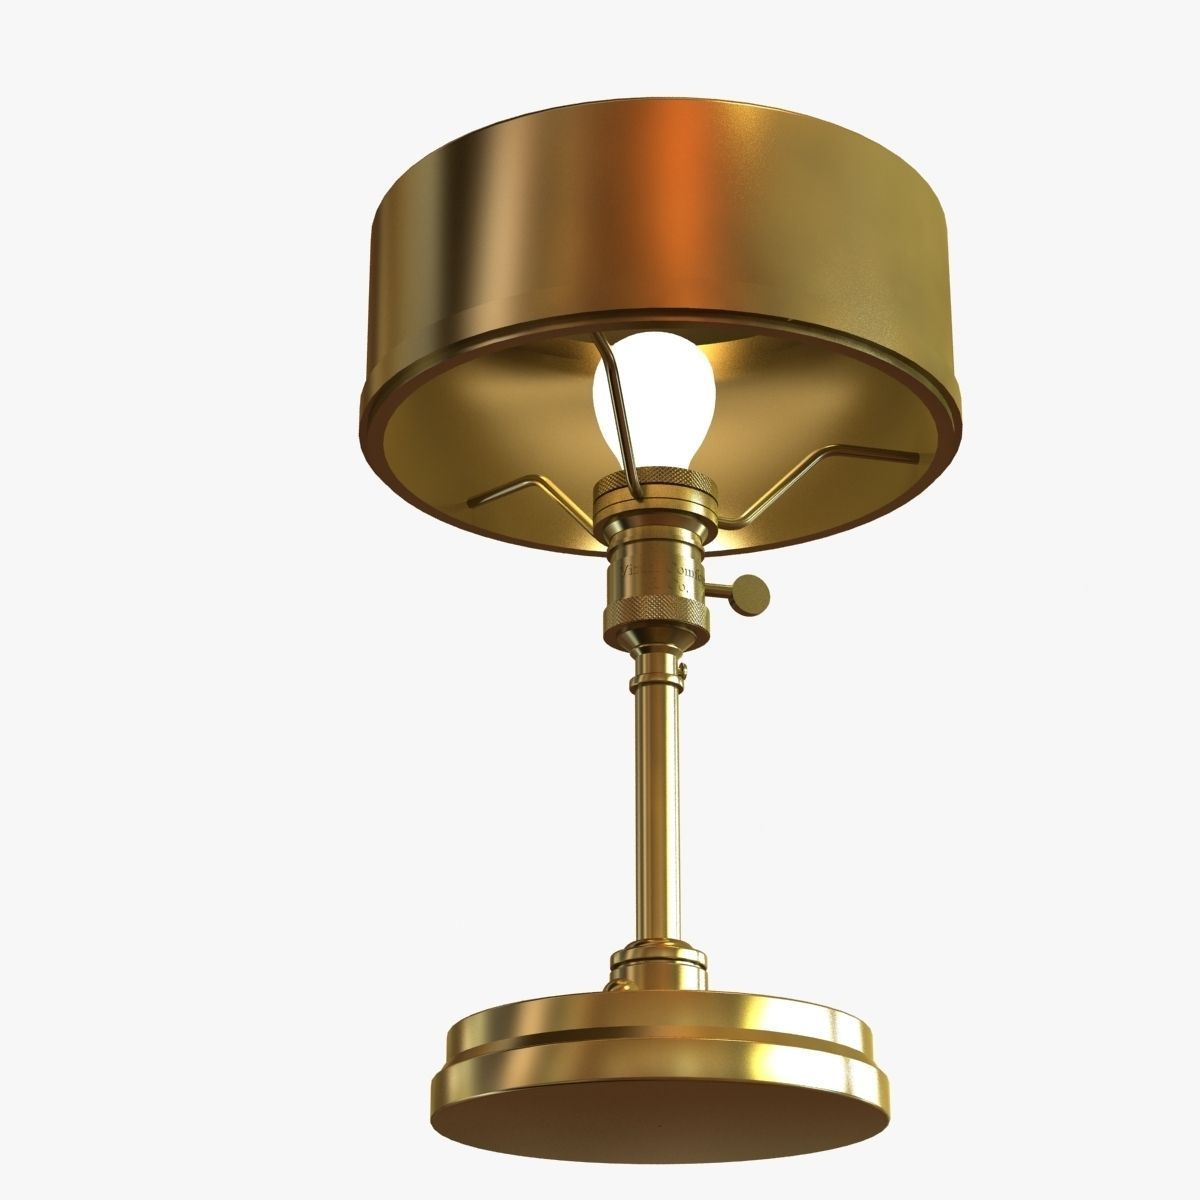 ... Thomas O Brien Henley Table Lamp In Hand Rubbed Antique Brass By 3d  Model Max ...